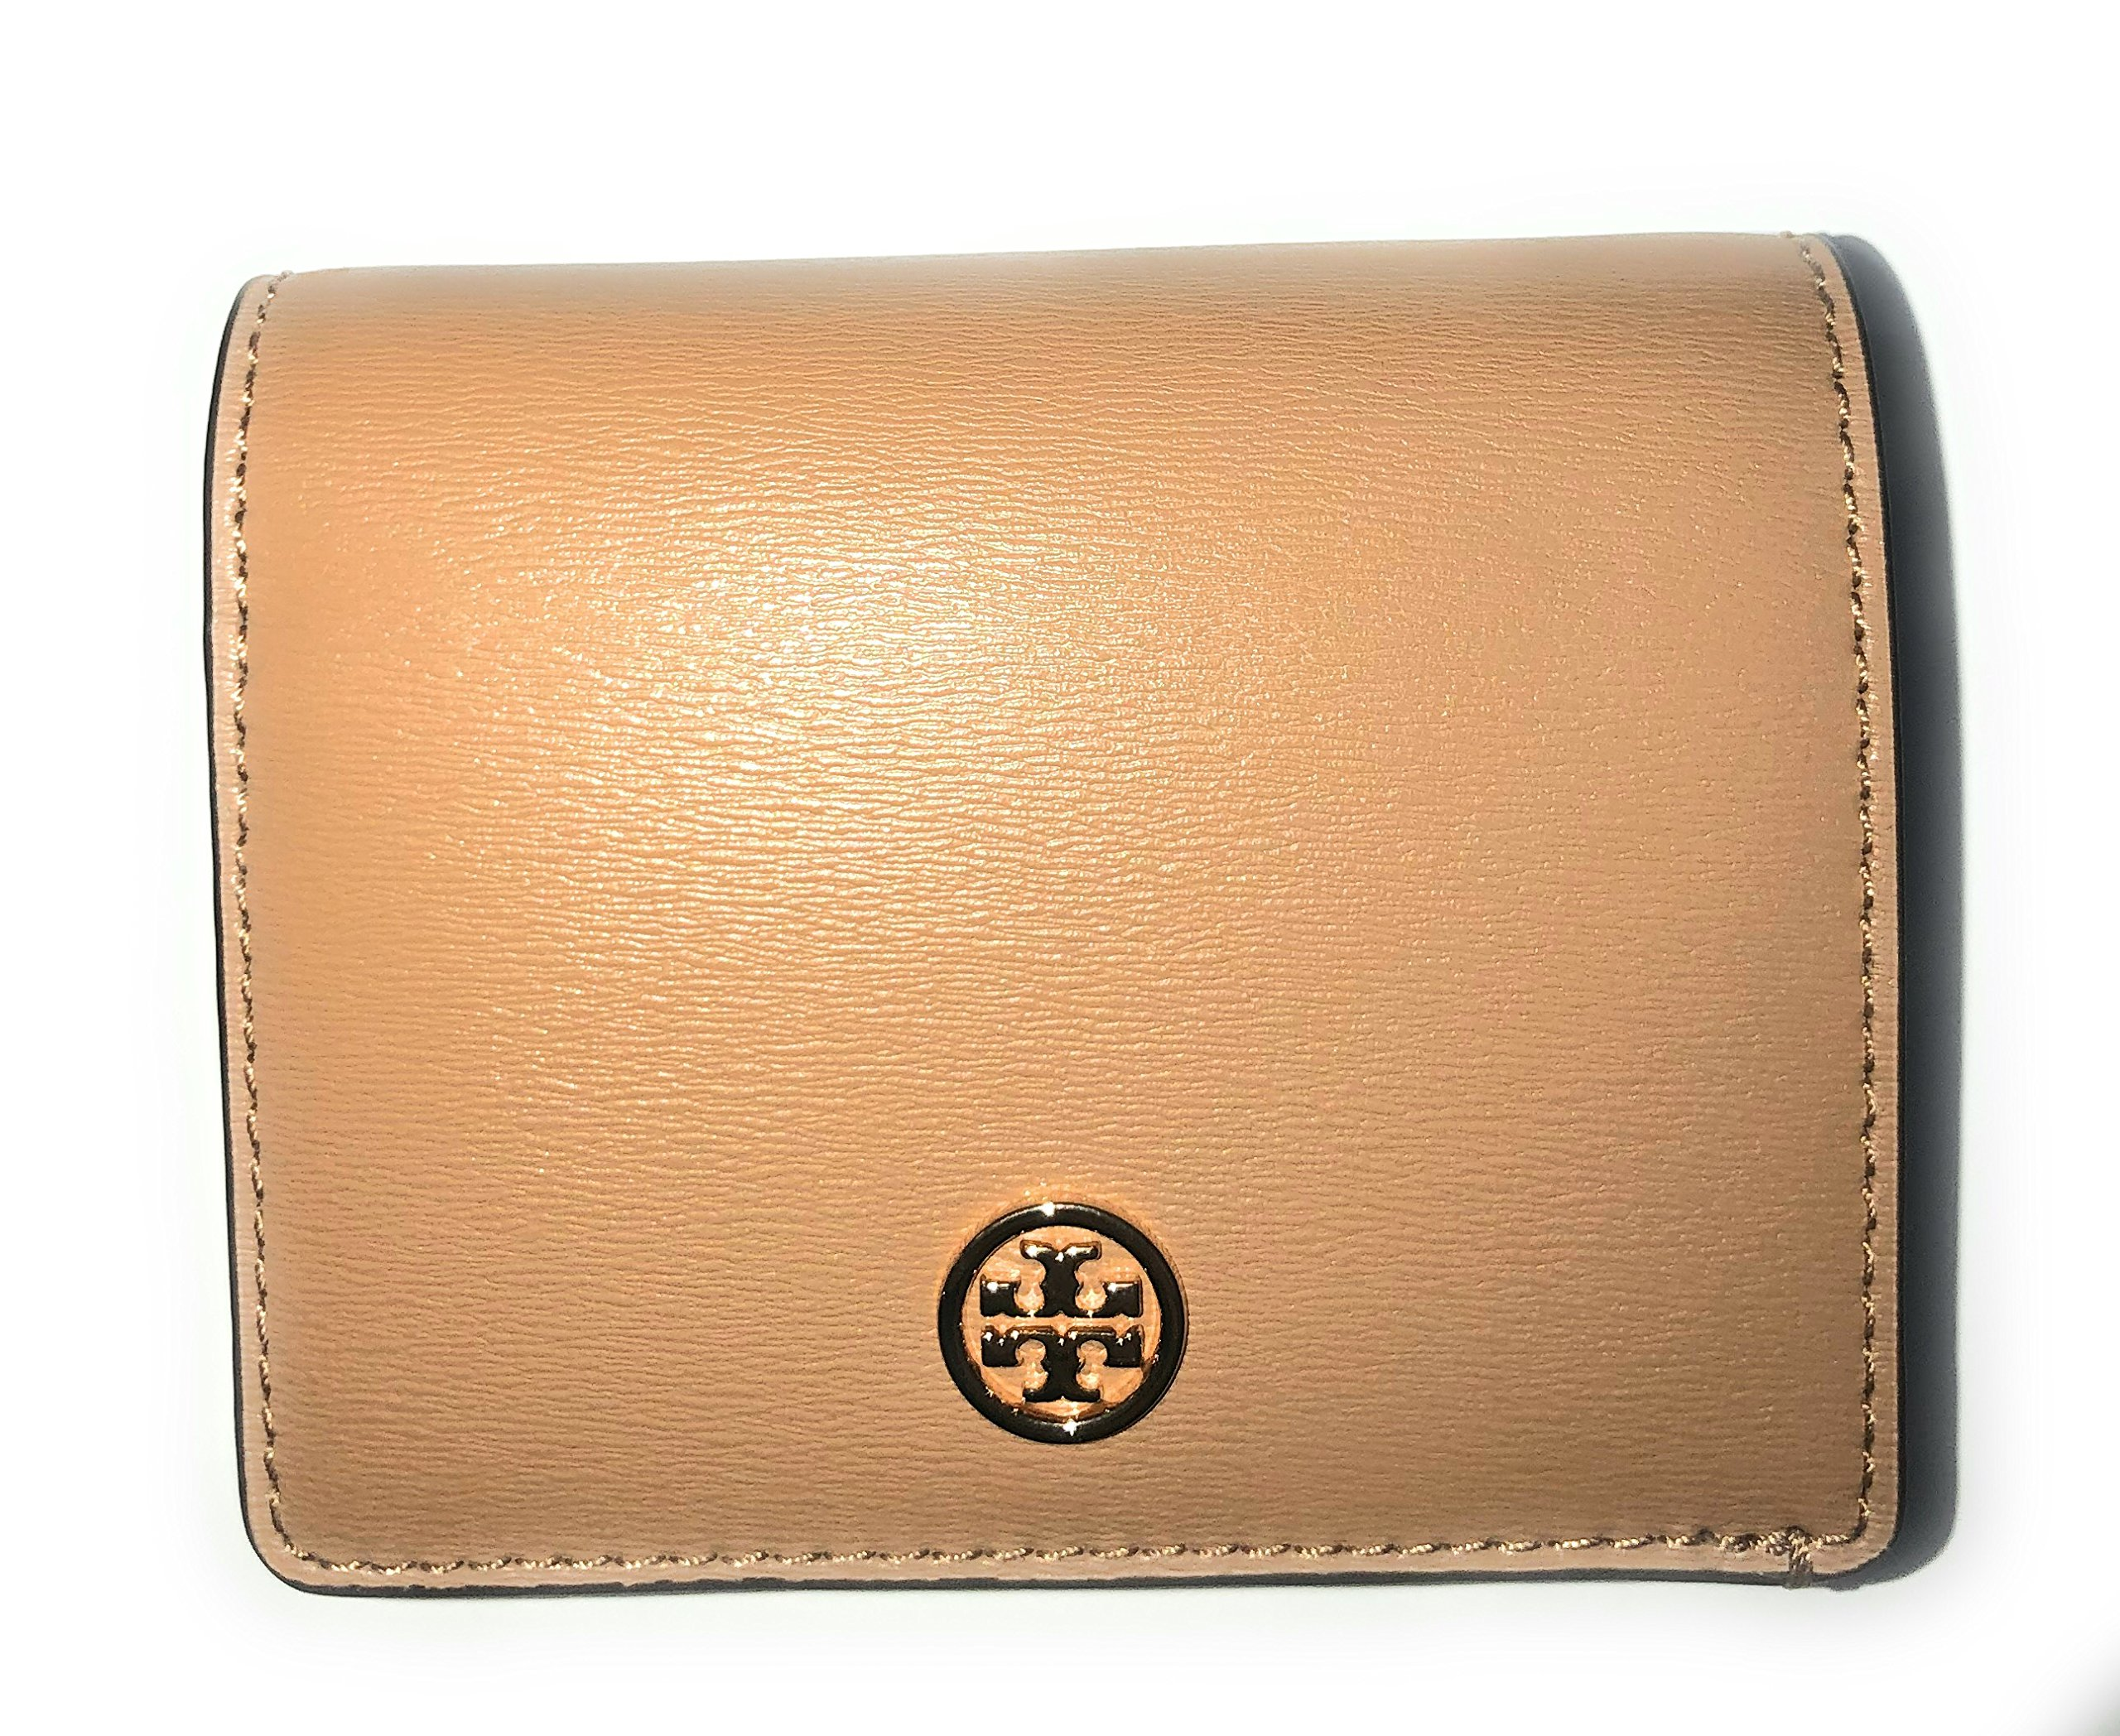 Tory Burch Parker Foldable Mini Leather Wallet in Black (Cardamom) by Tory Burch